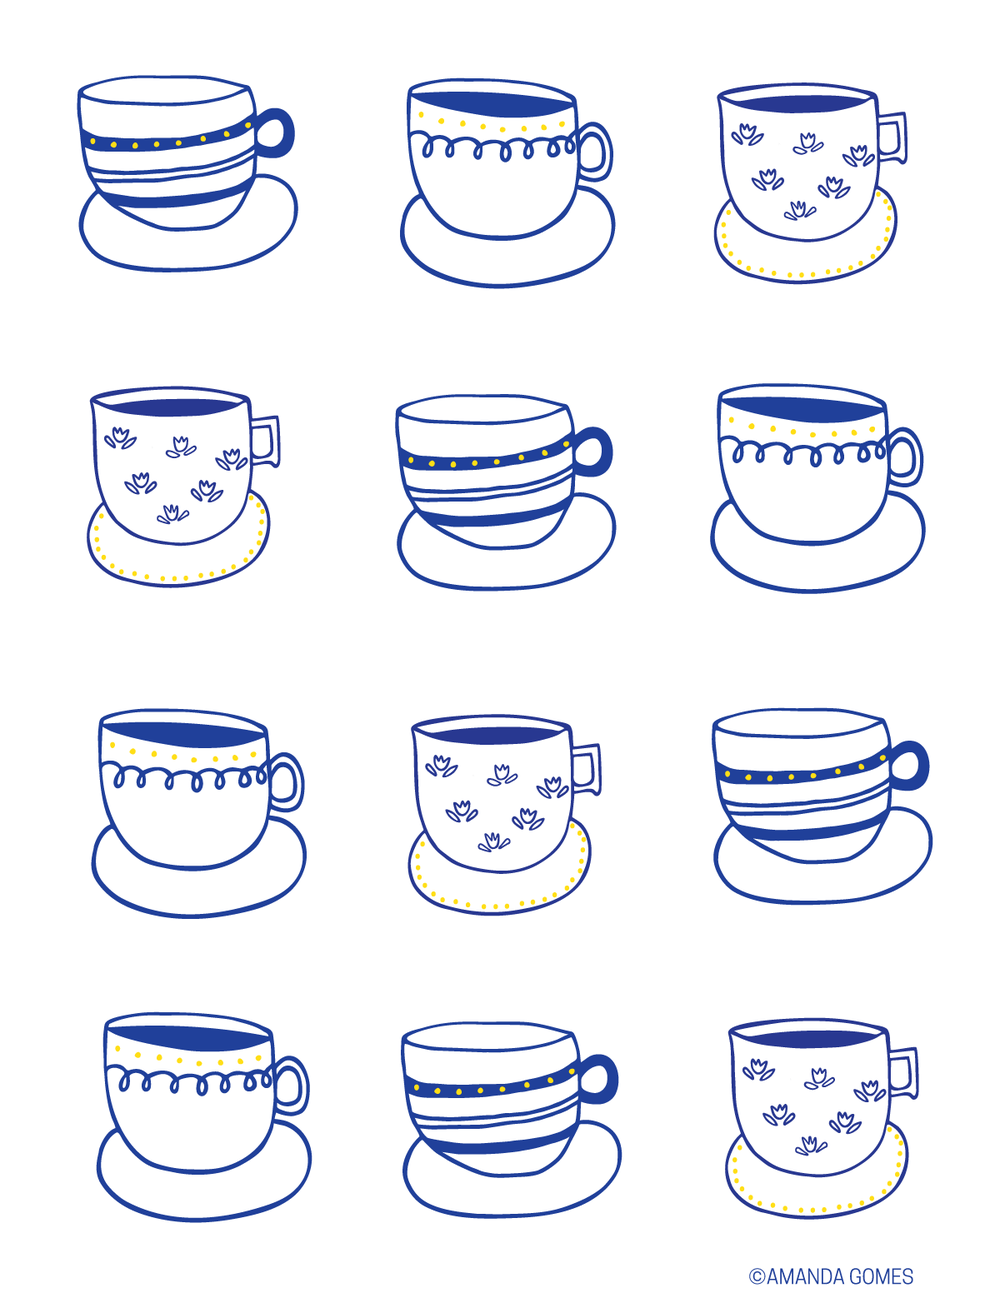 Amanda Gomes Illustration - Teacups in Blue - www.delightedco.com